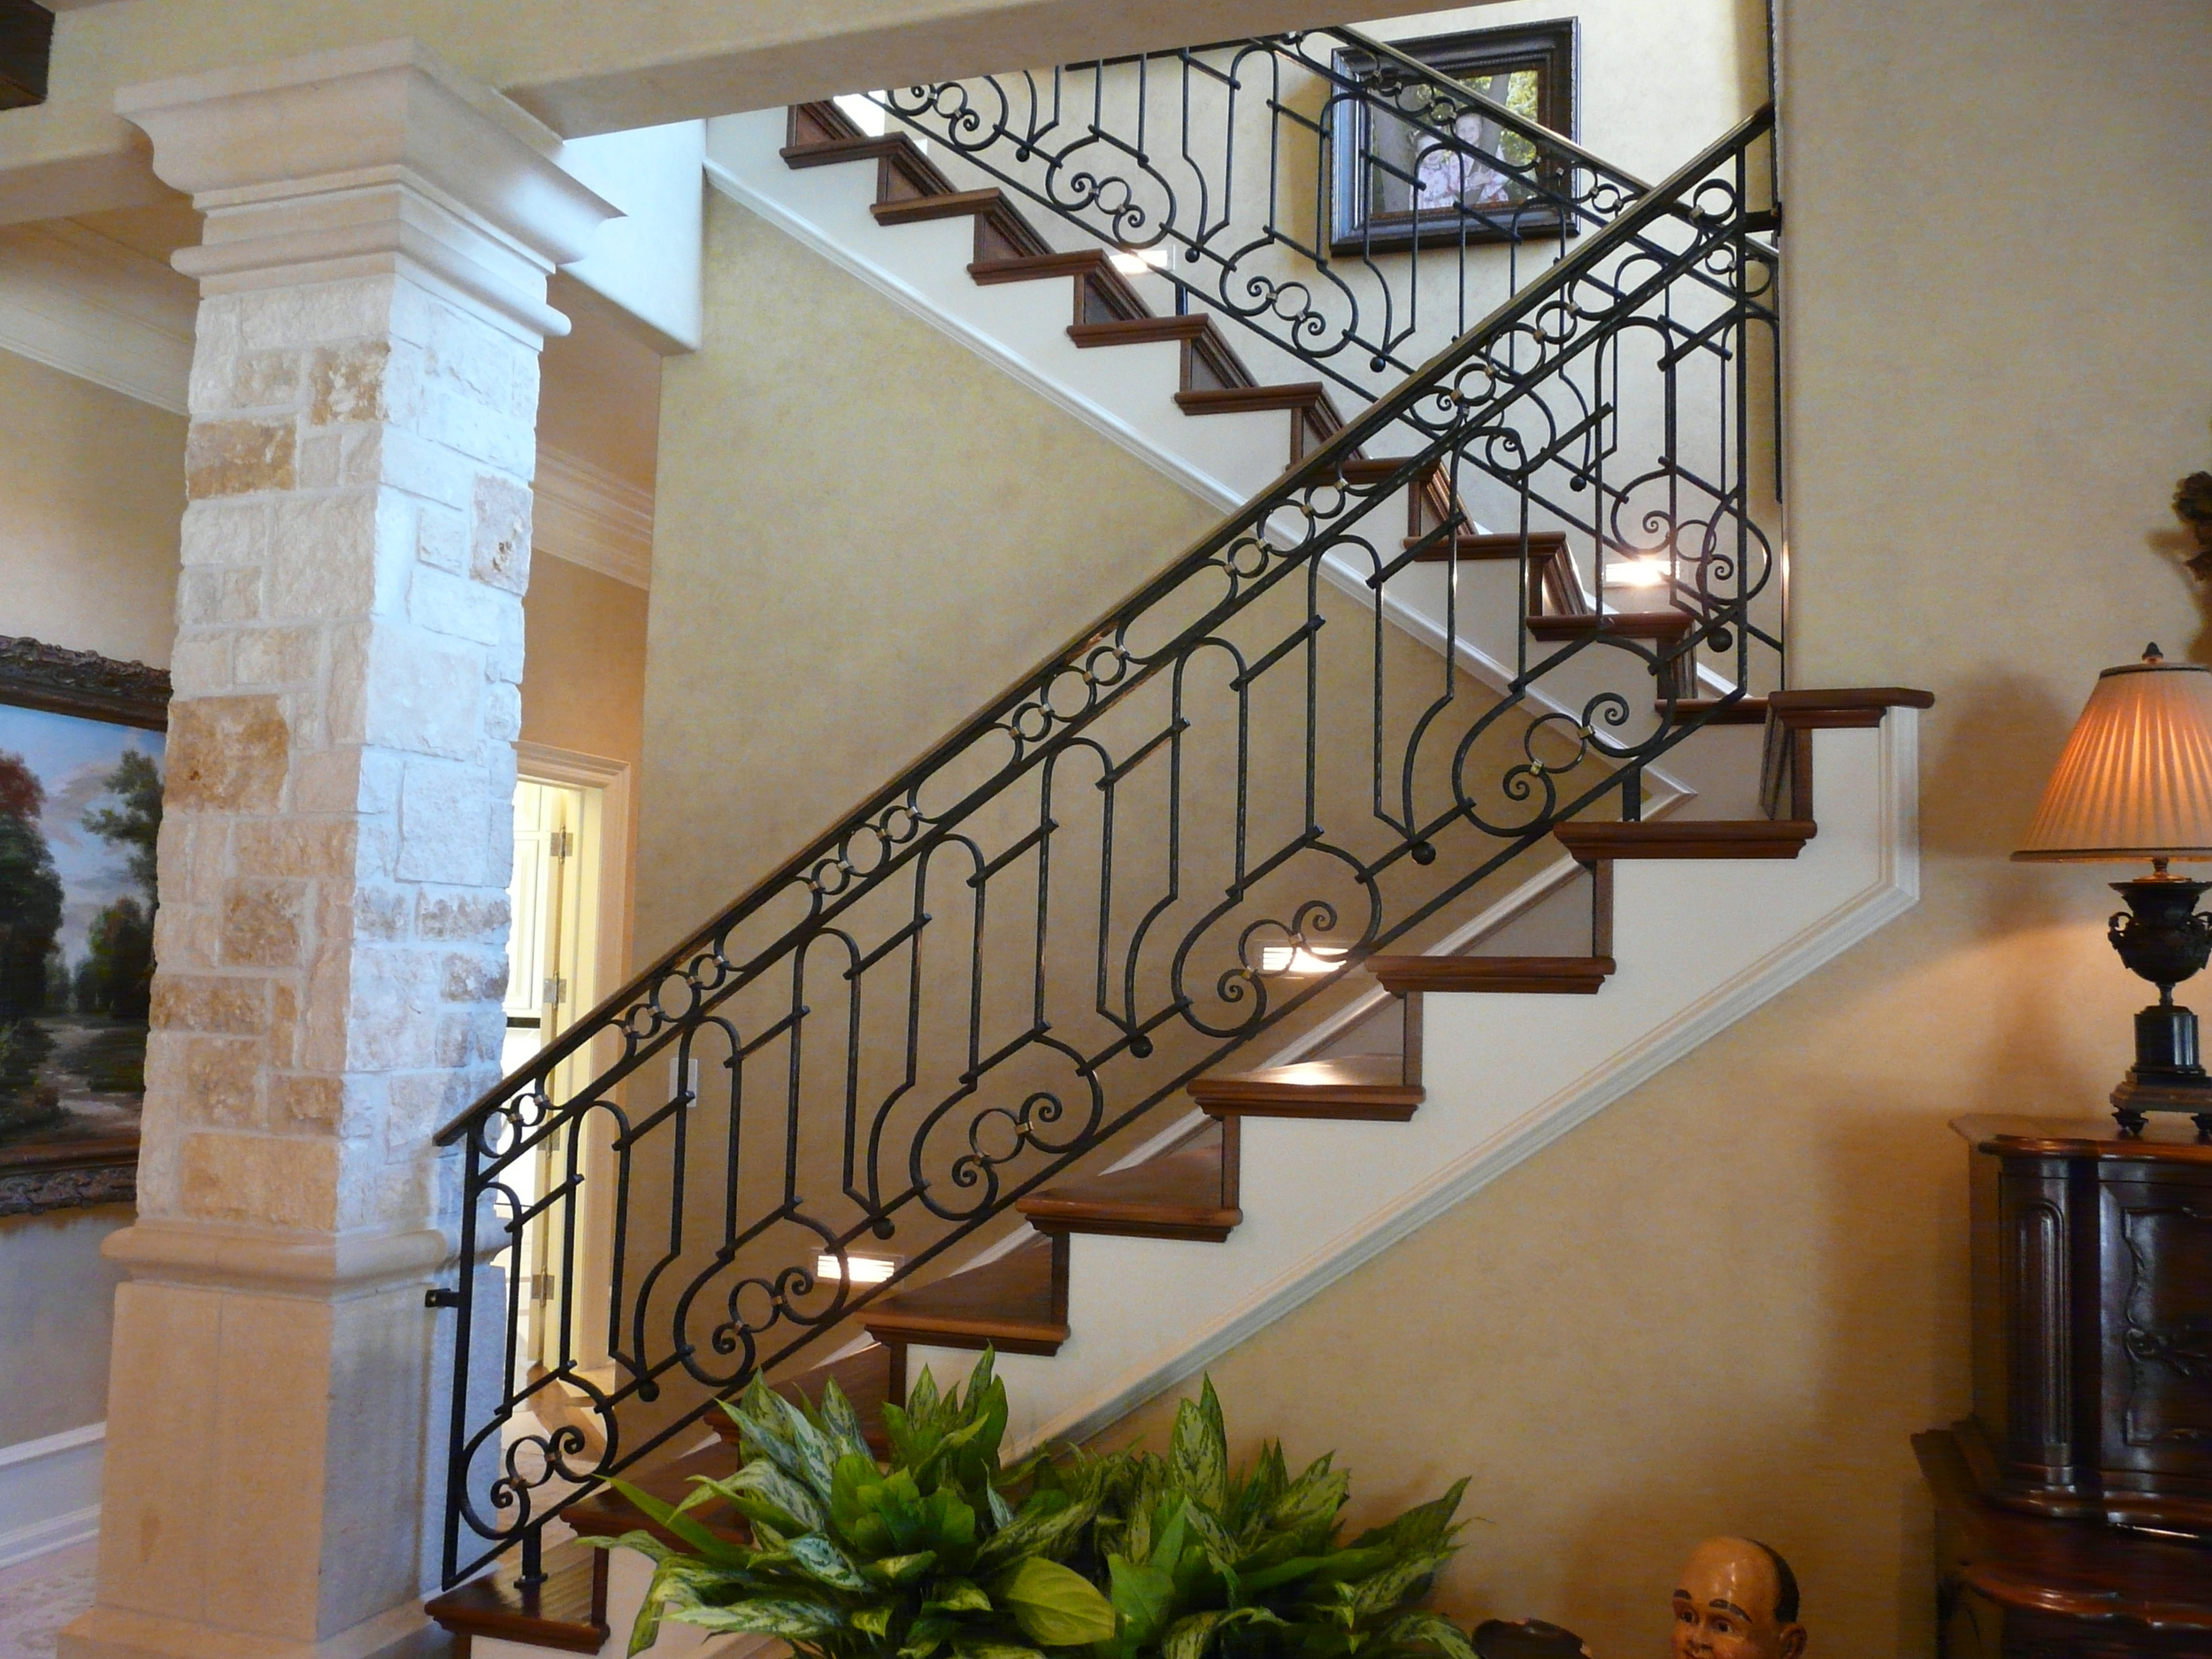 Slit and Drifted Staircase Railing